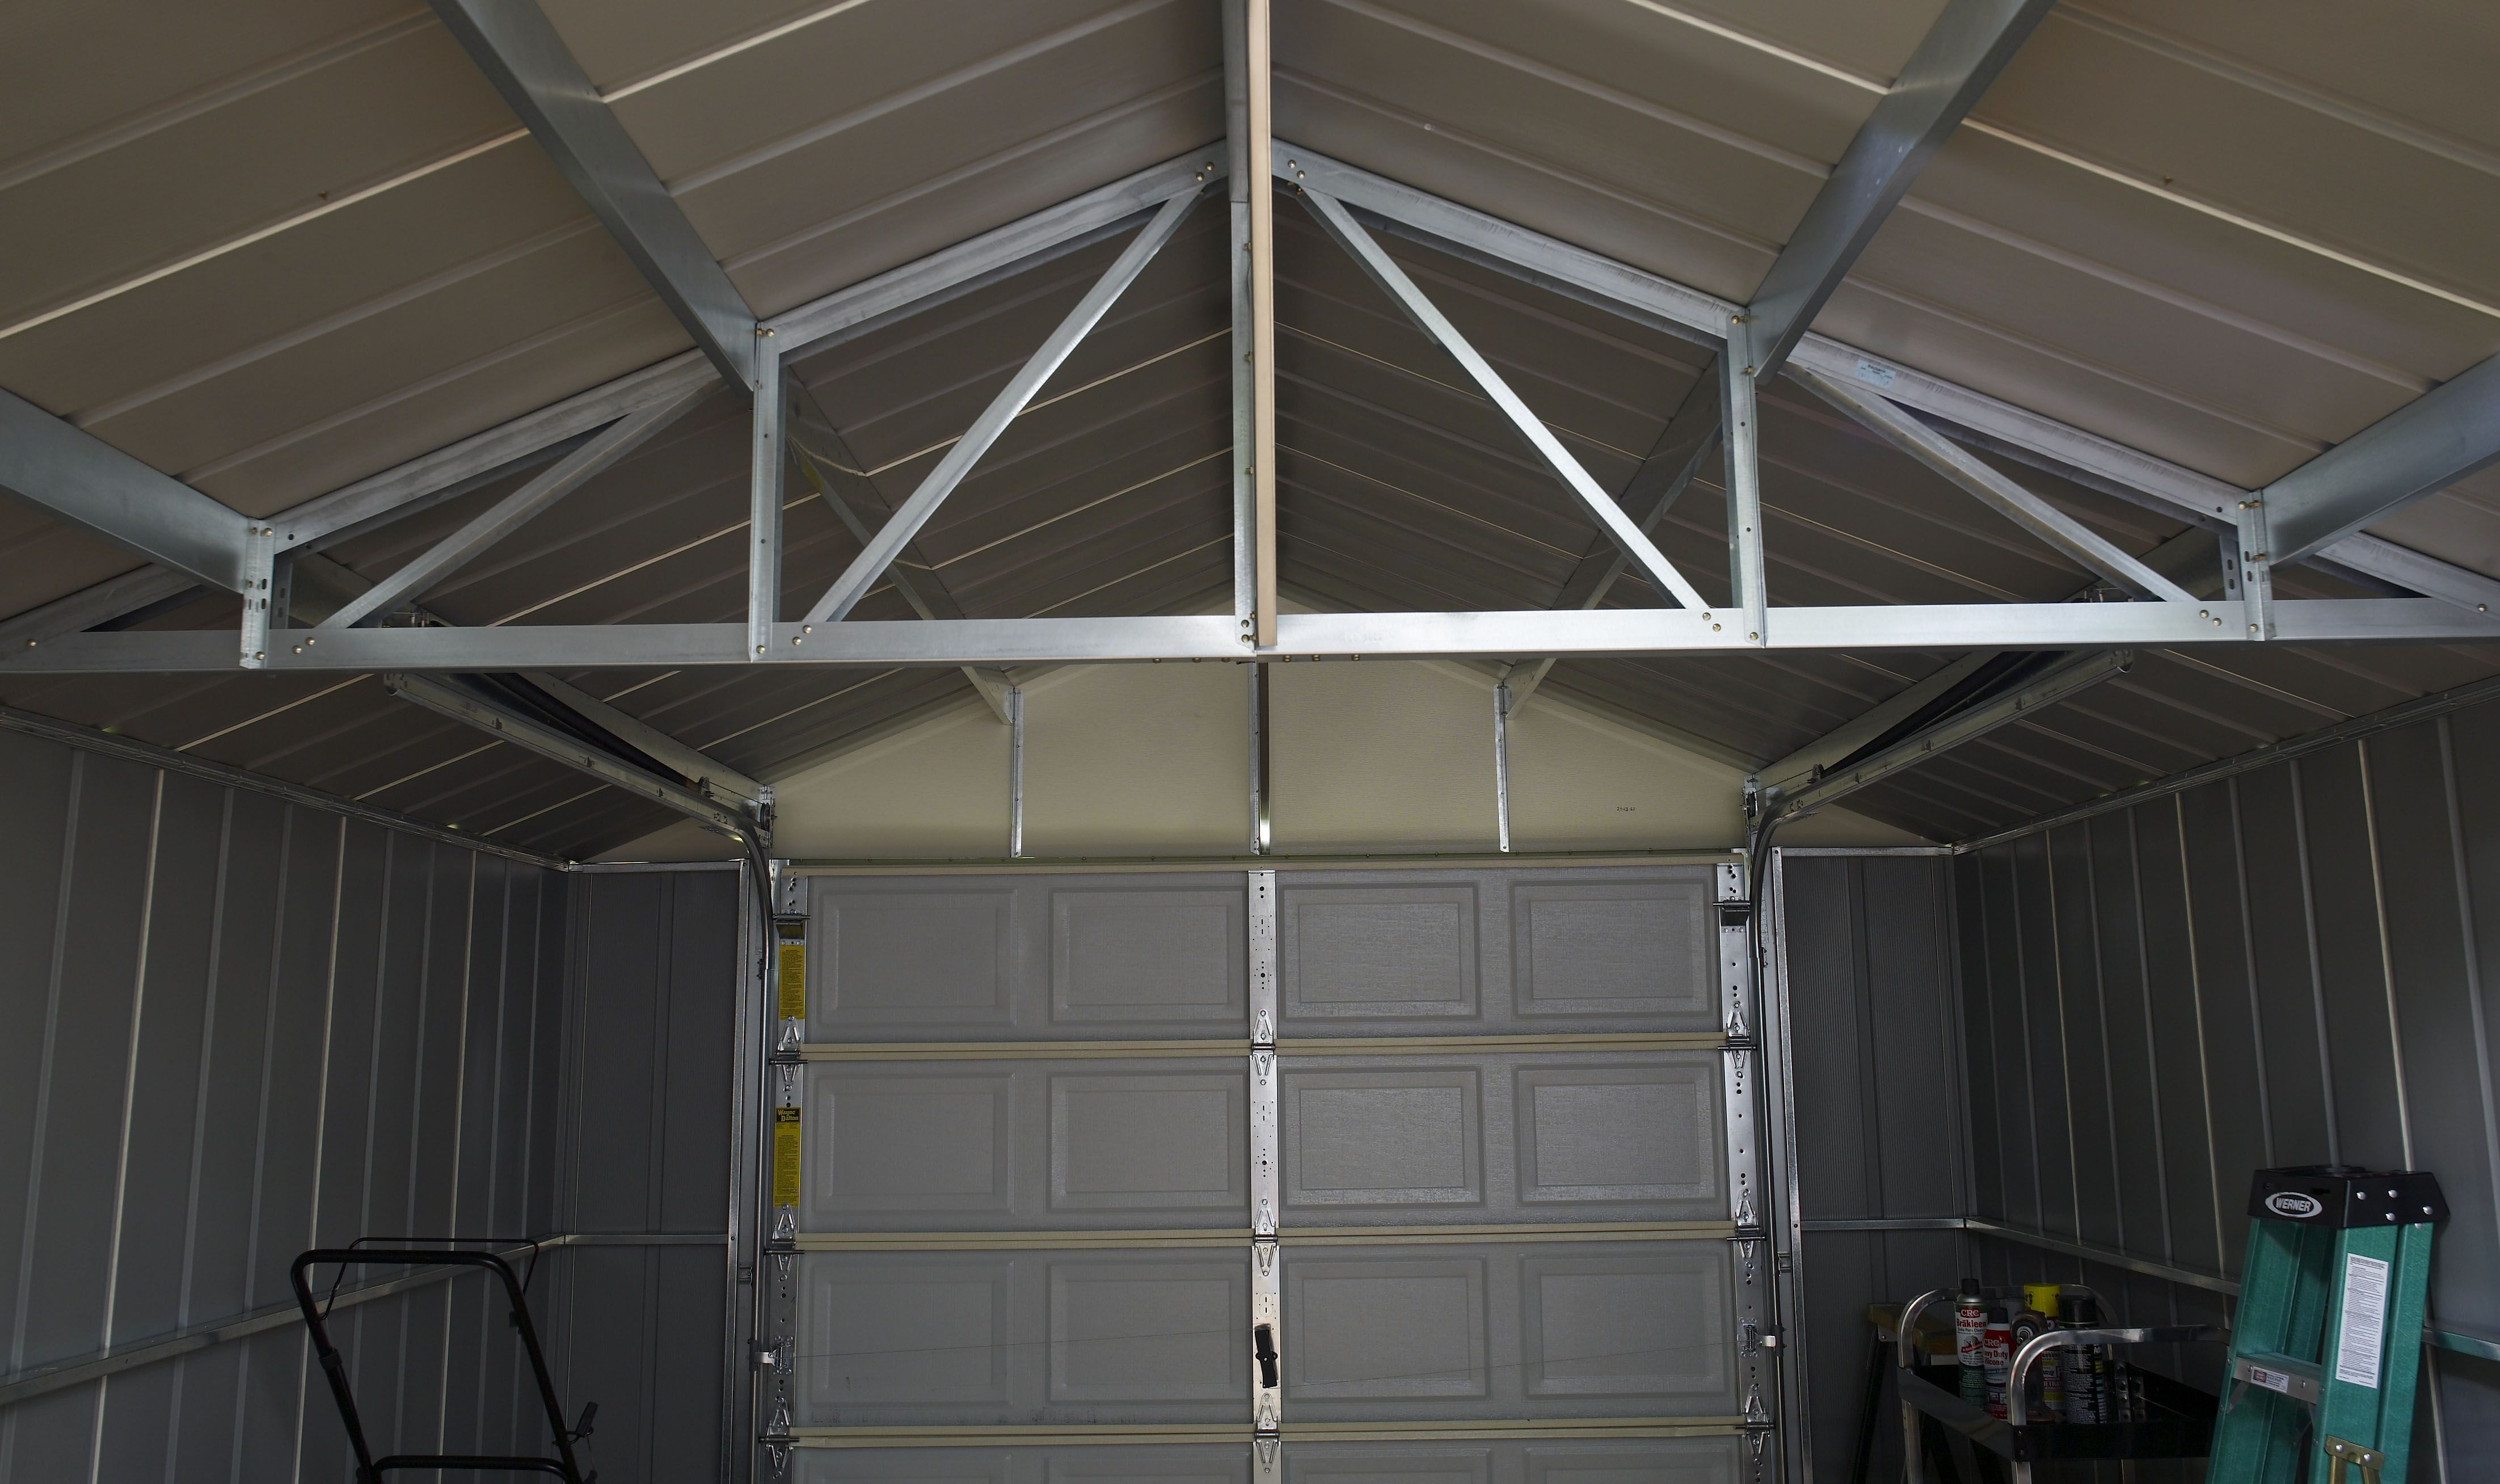 The High gable roof with reinforced steel trusses of the